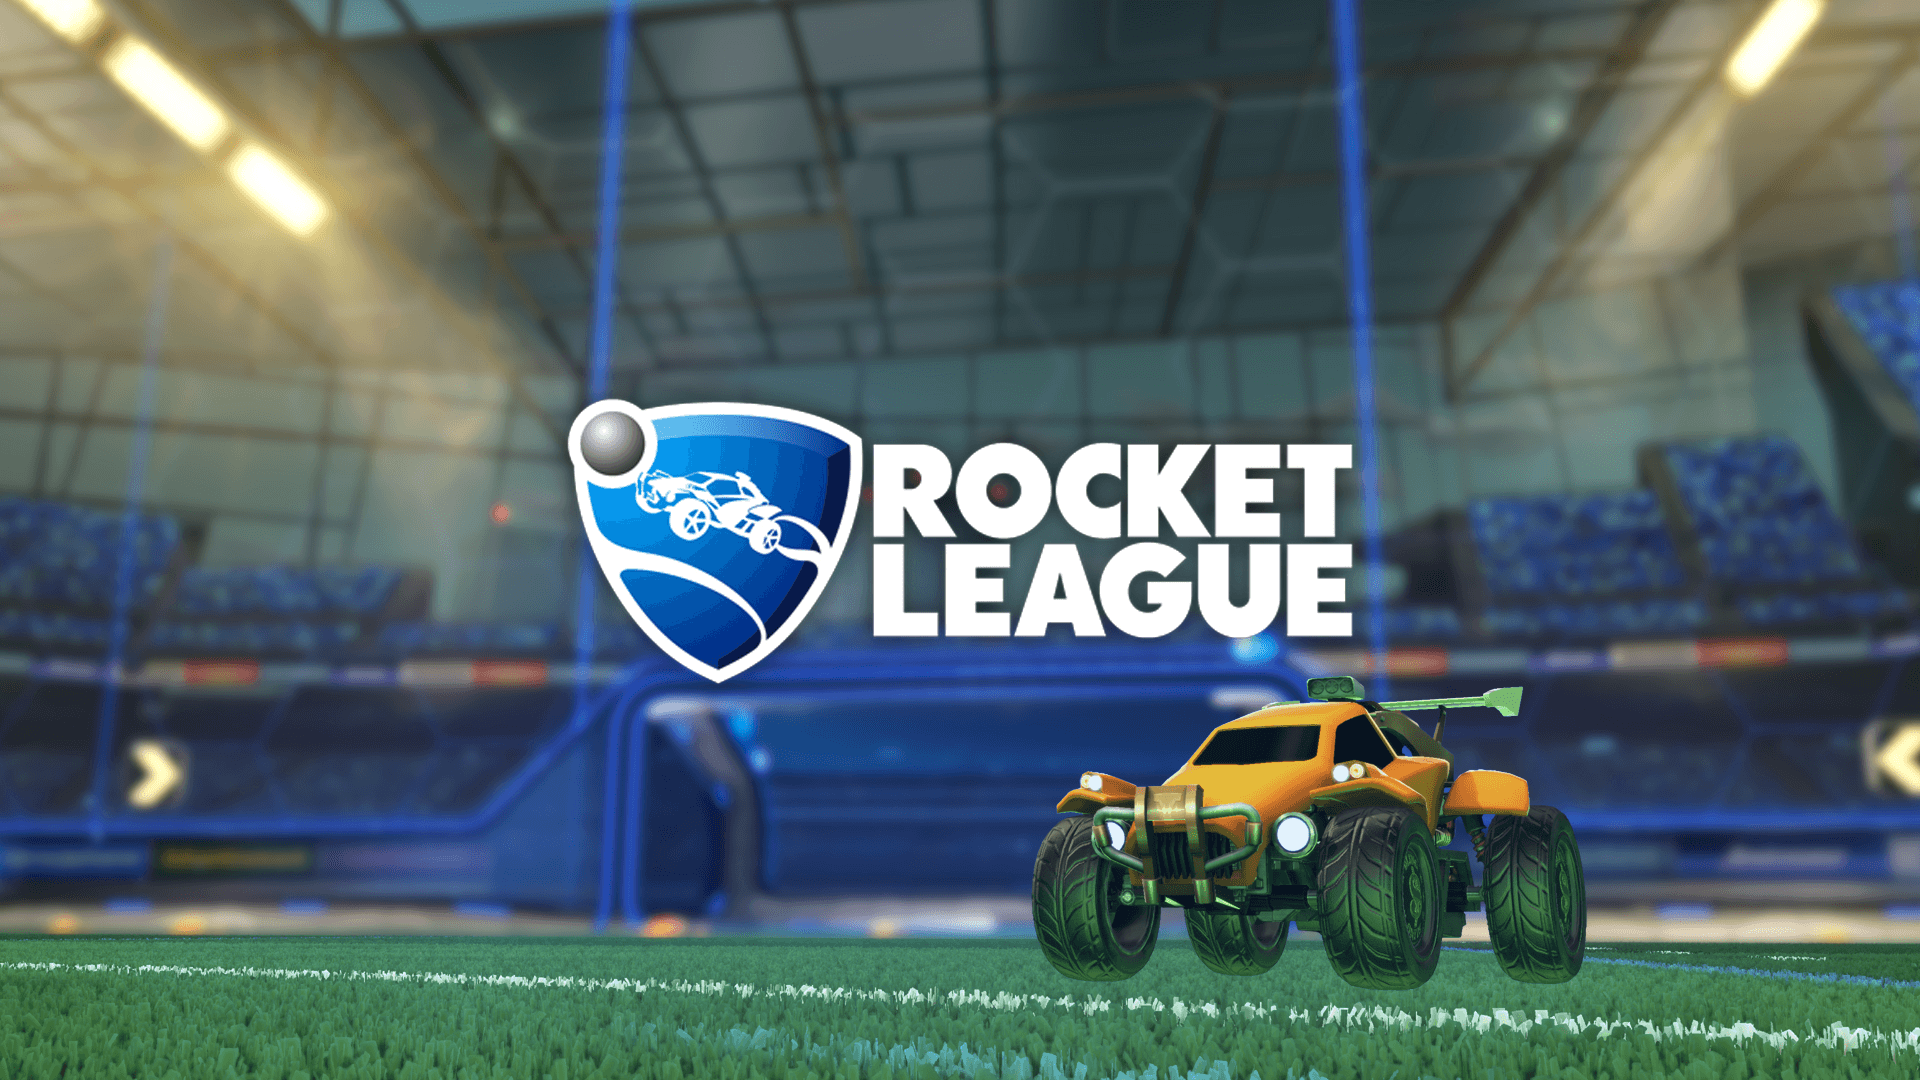 The Rocket League Season 8 rewards and Season 9 details